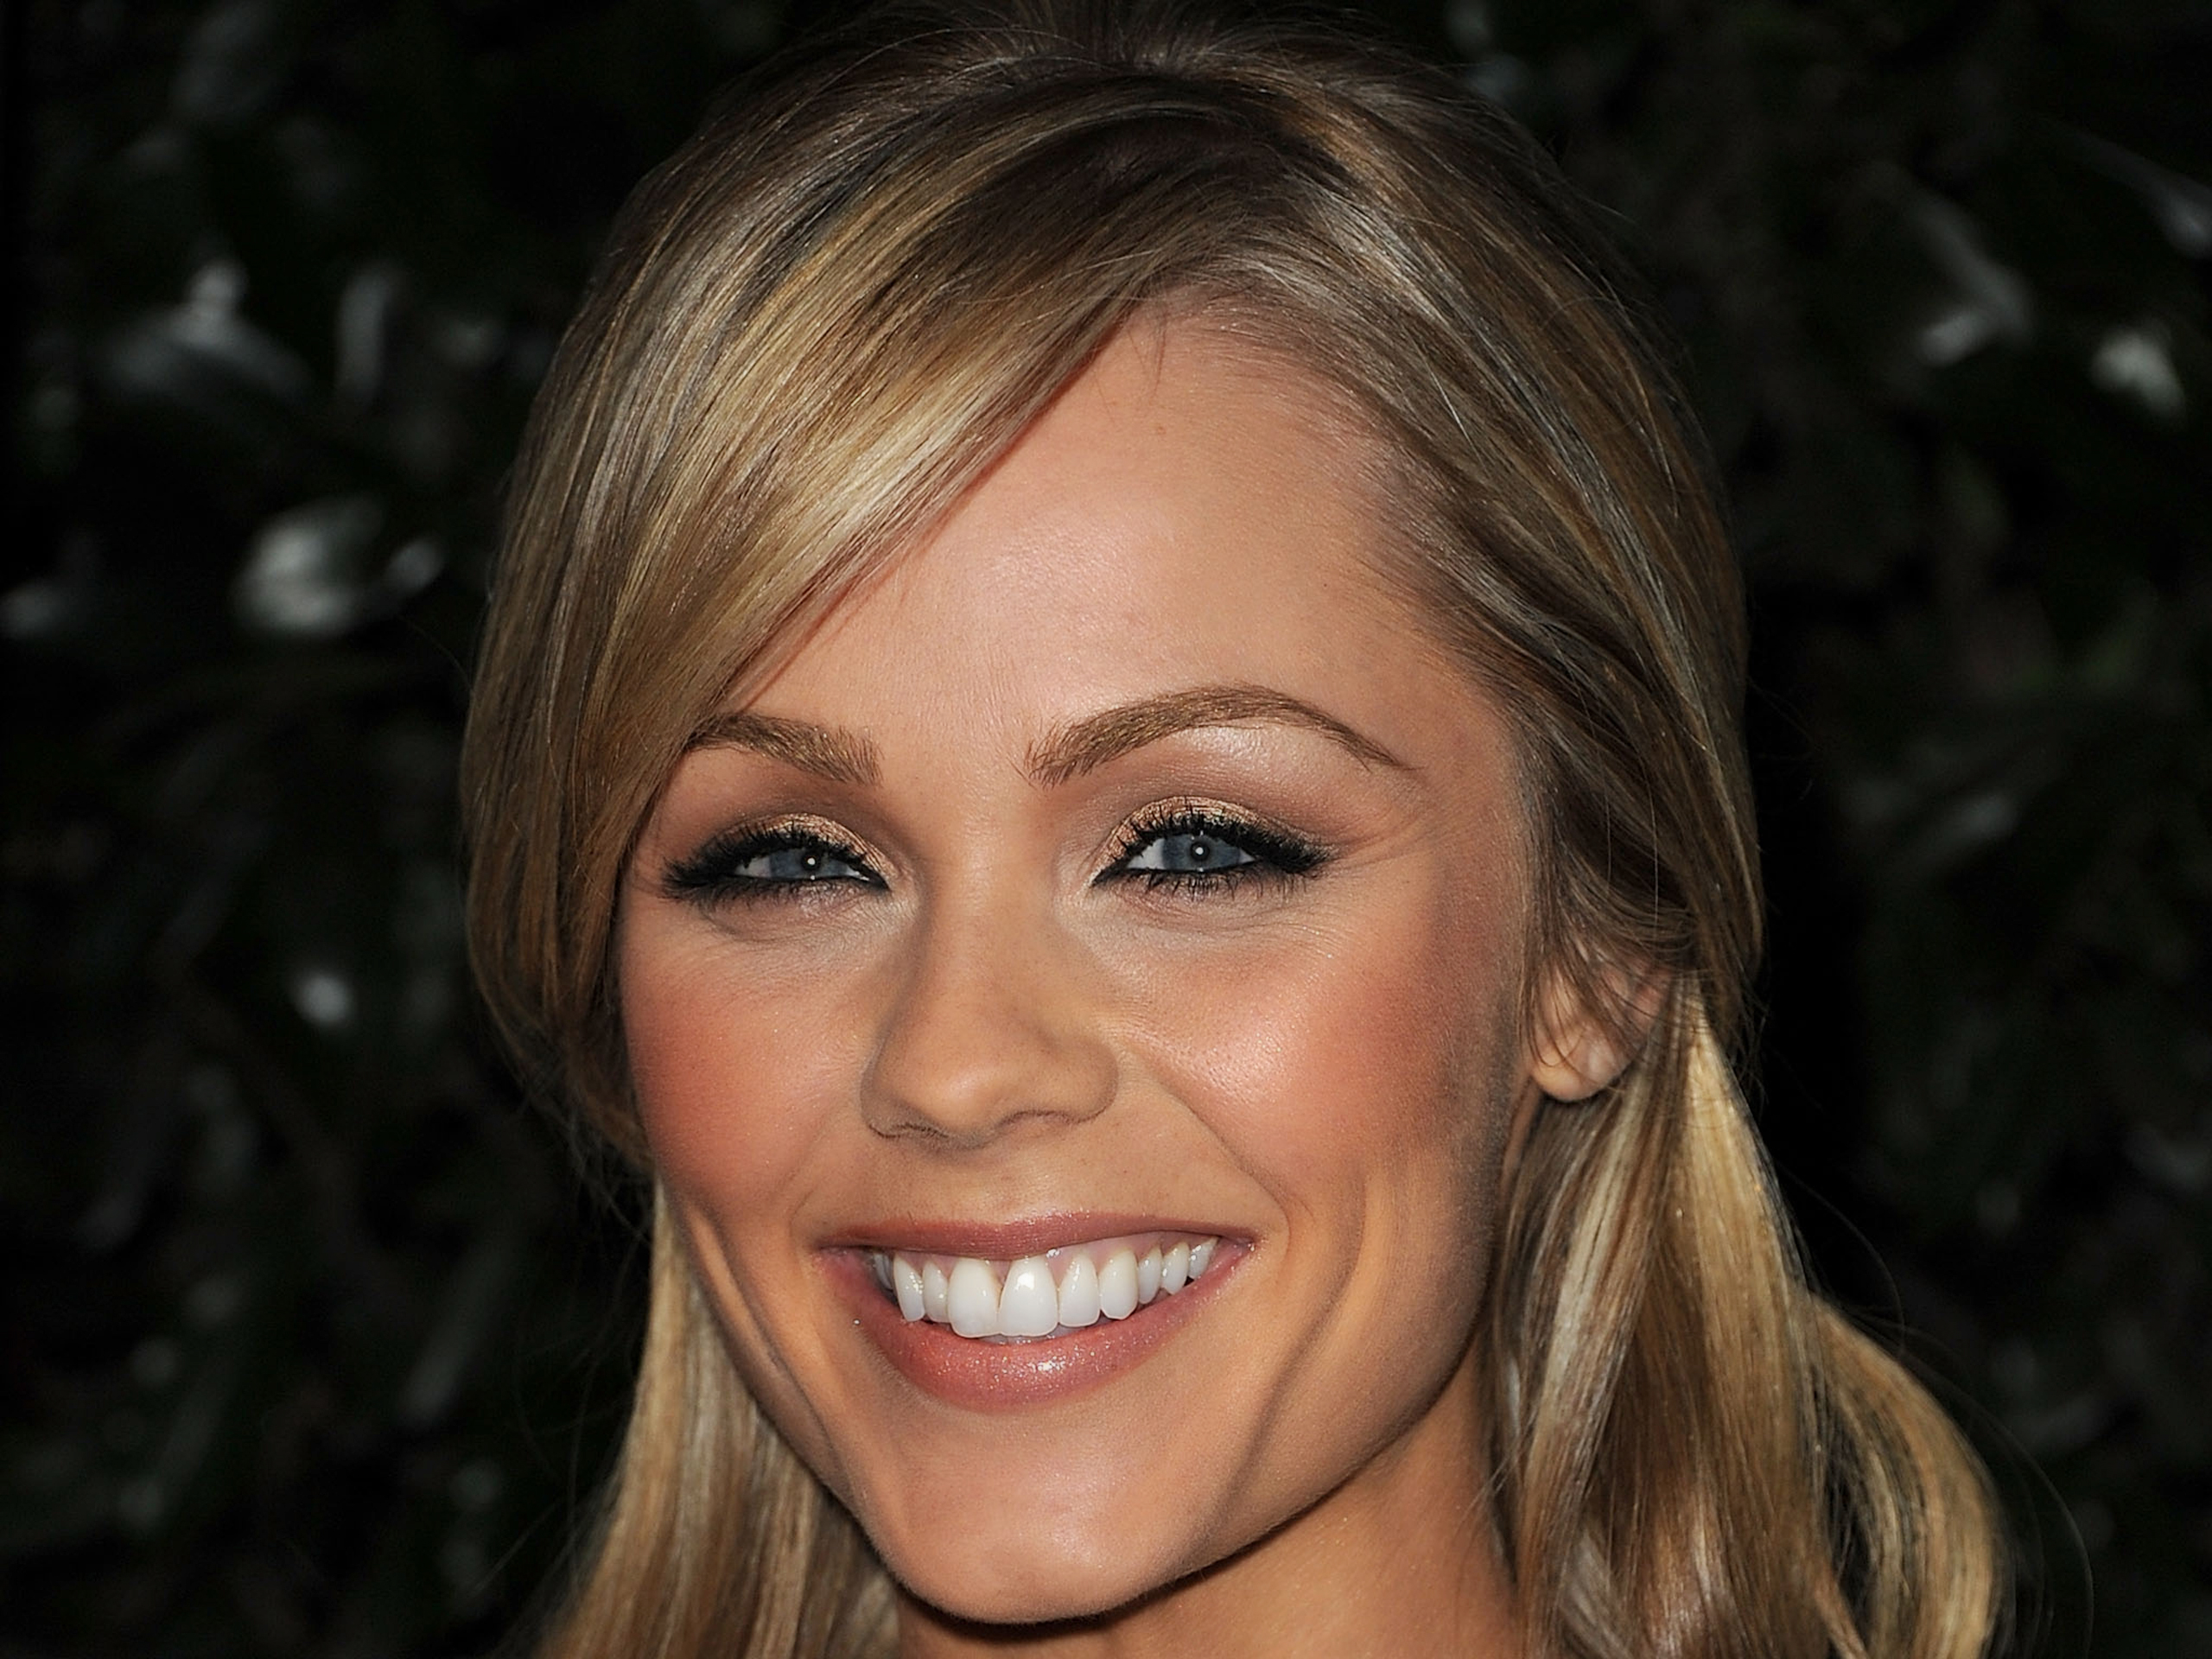 http://im02.thewallpapers.org/photo/39289/laura_vandervoort-034.jpg